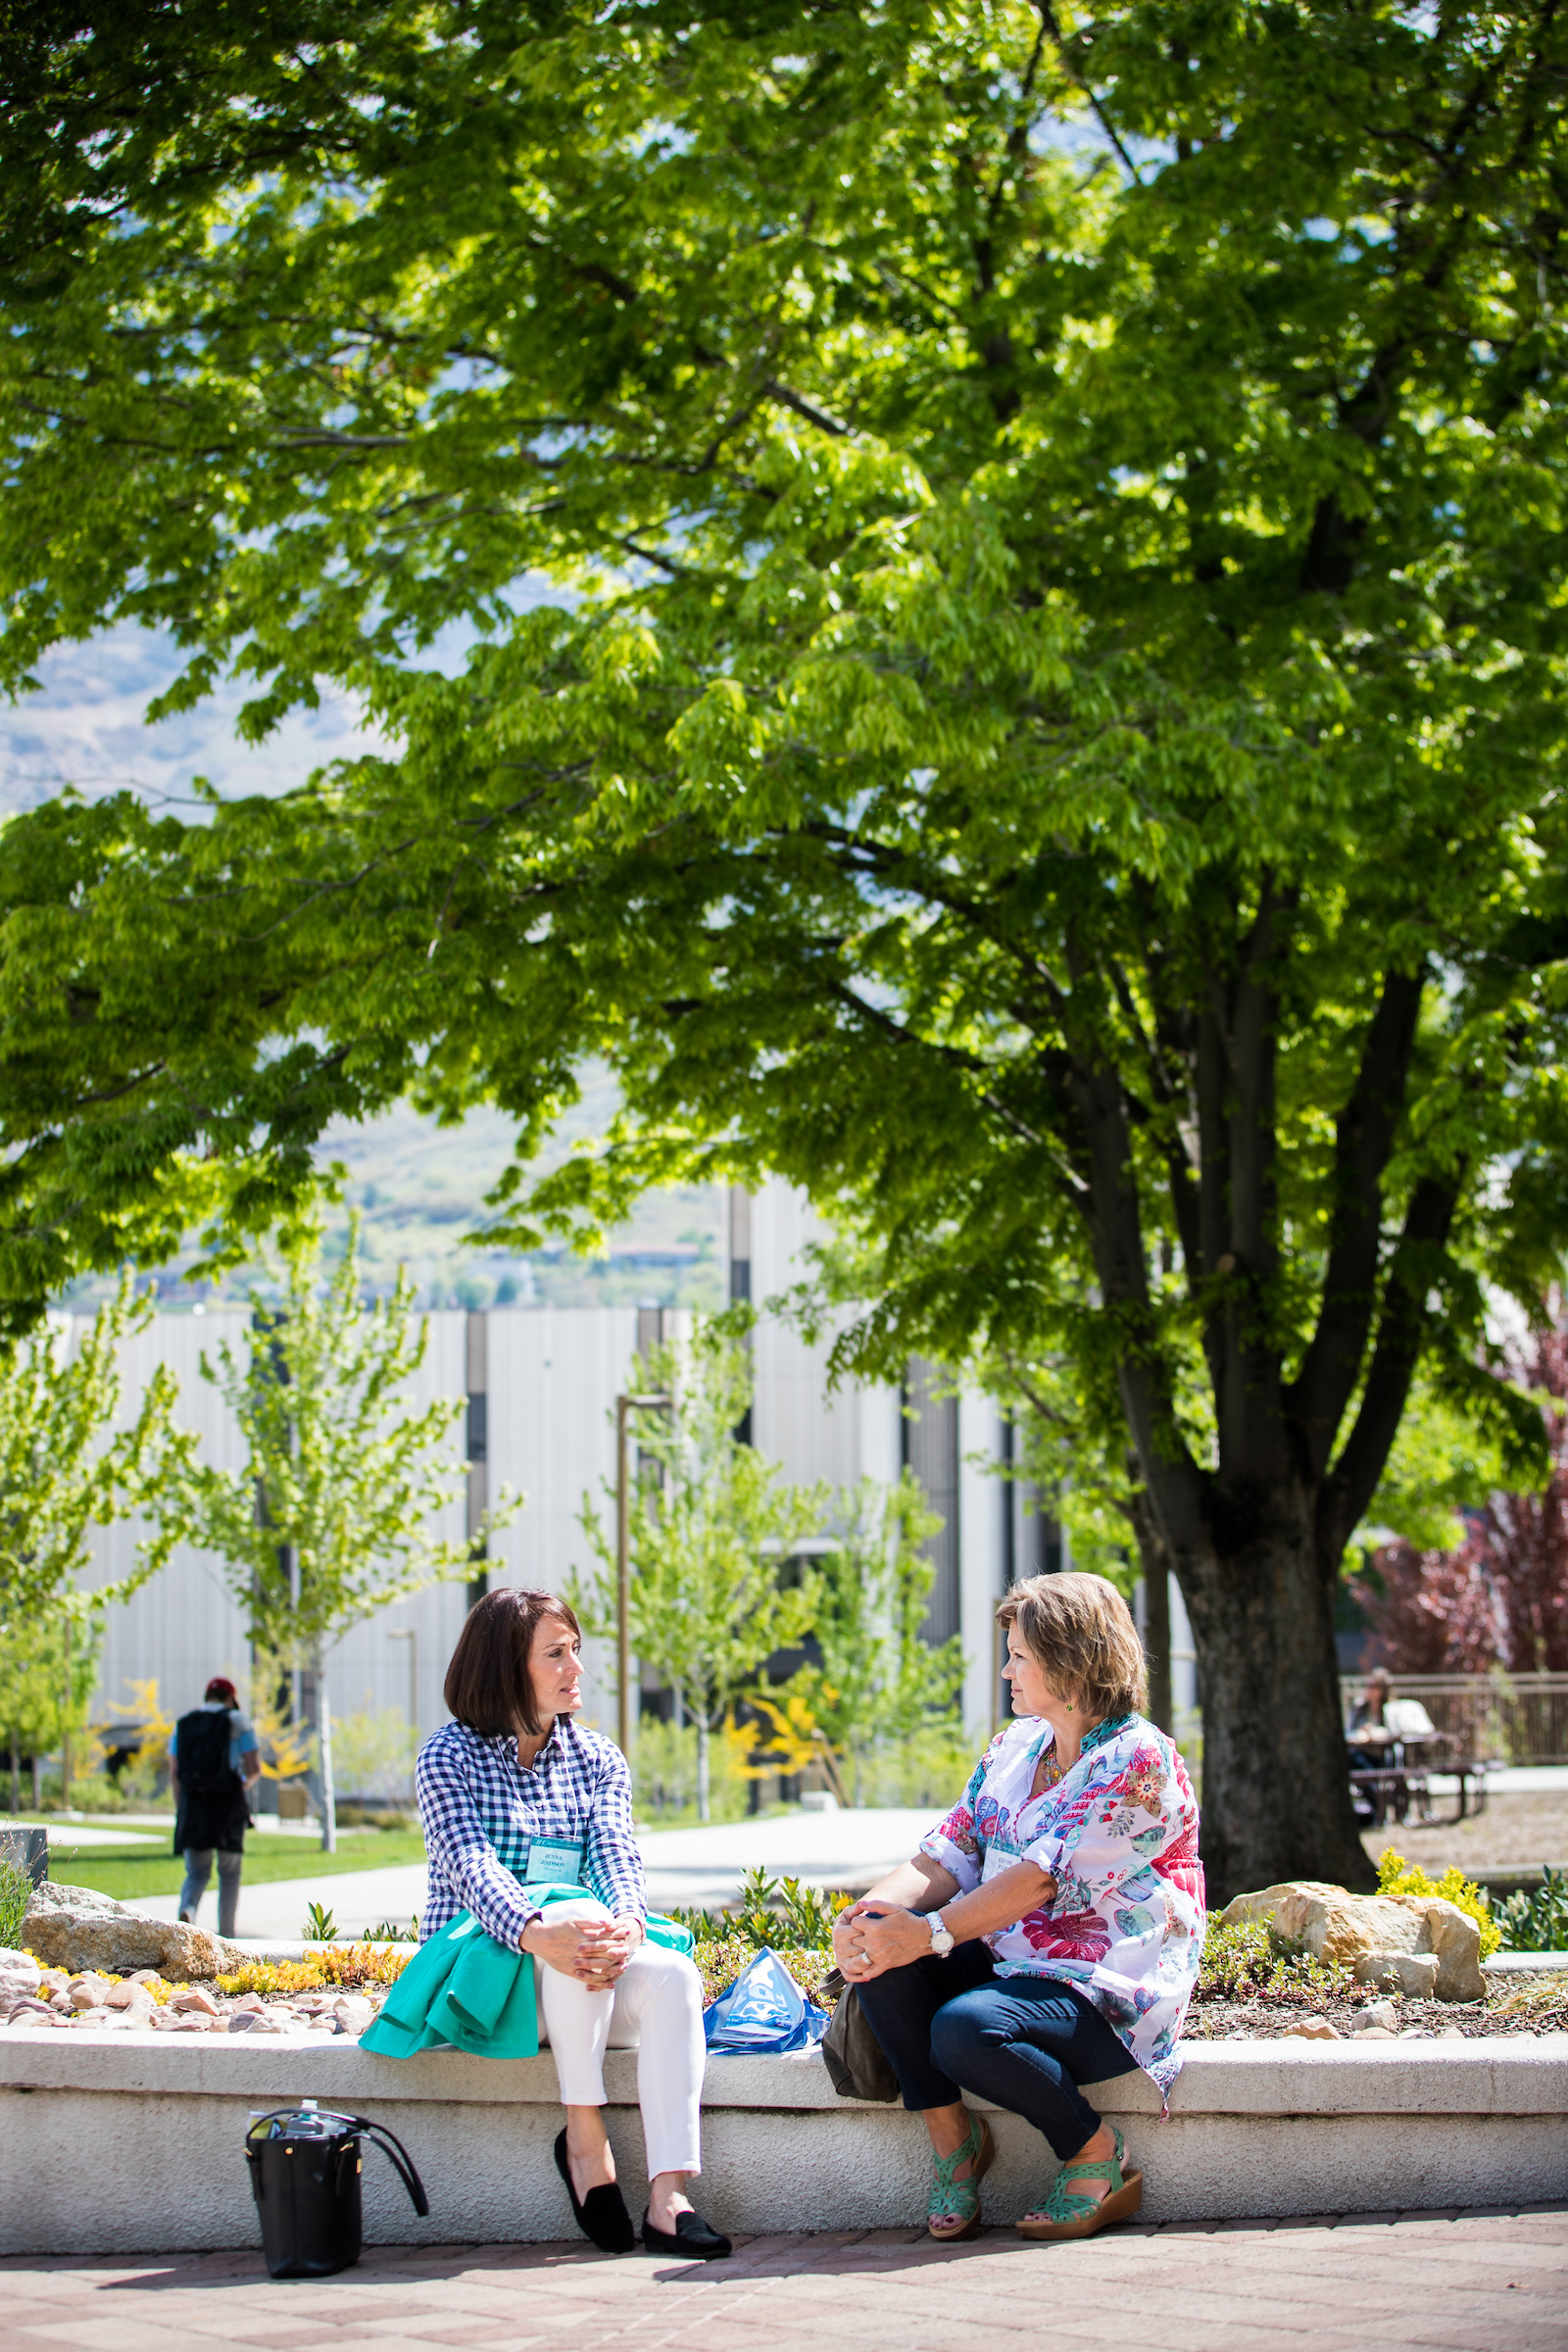 Attendees take a break on the BYU campus in Provo, Utah, during the annual BYU Women's Conference held May 3-4, 2018.